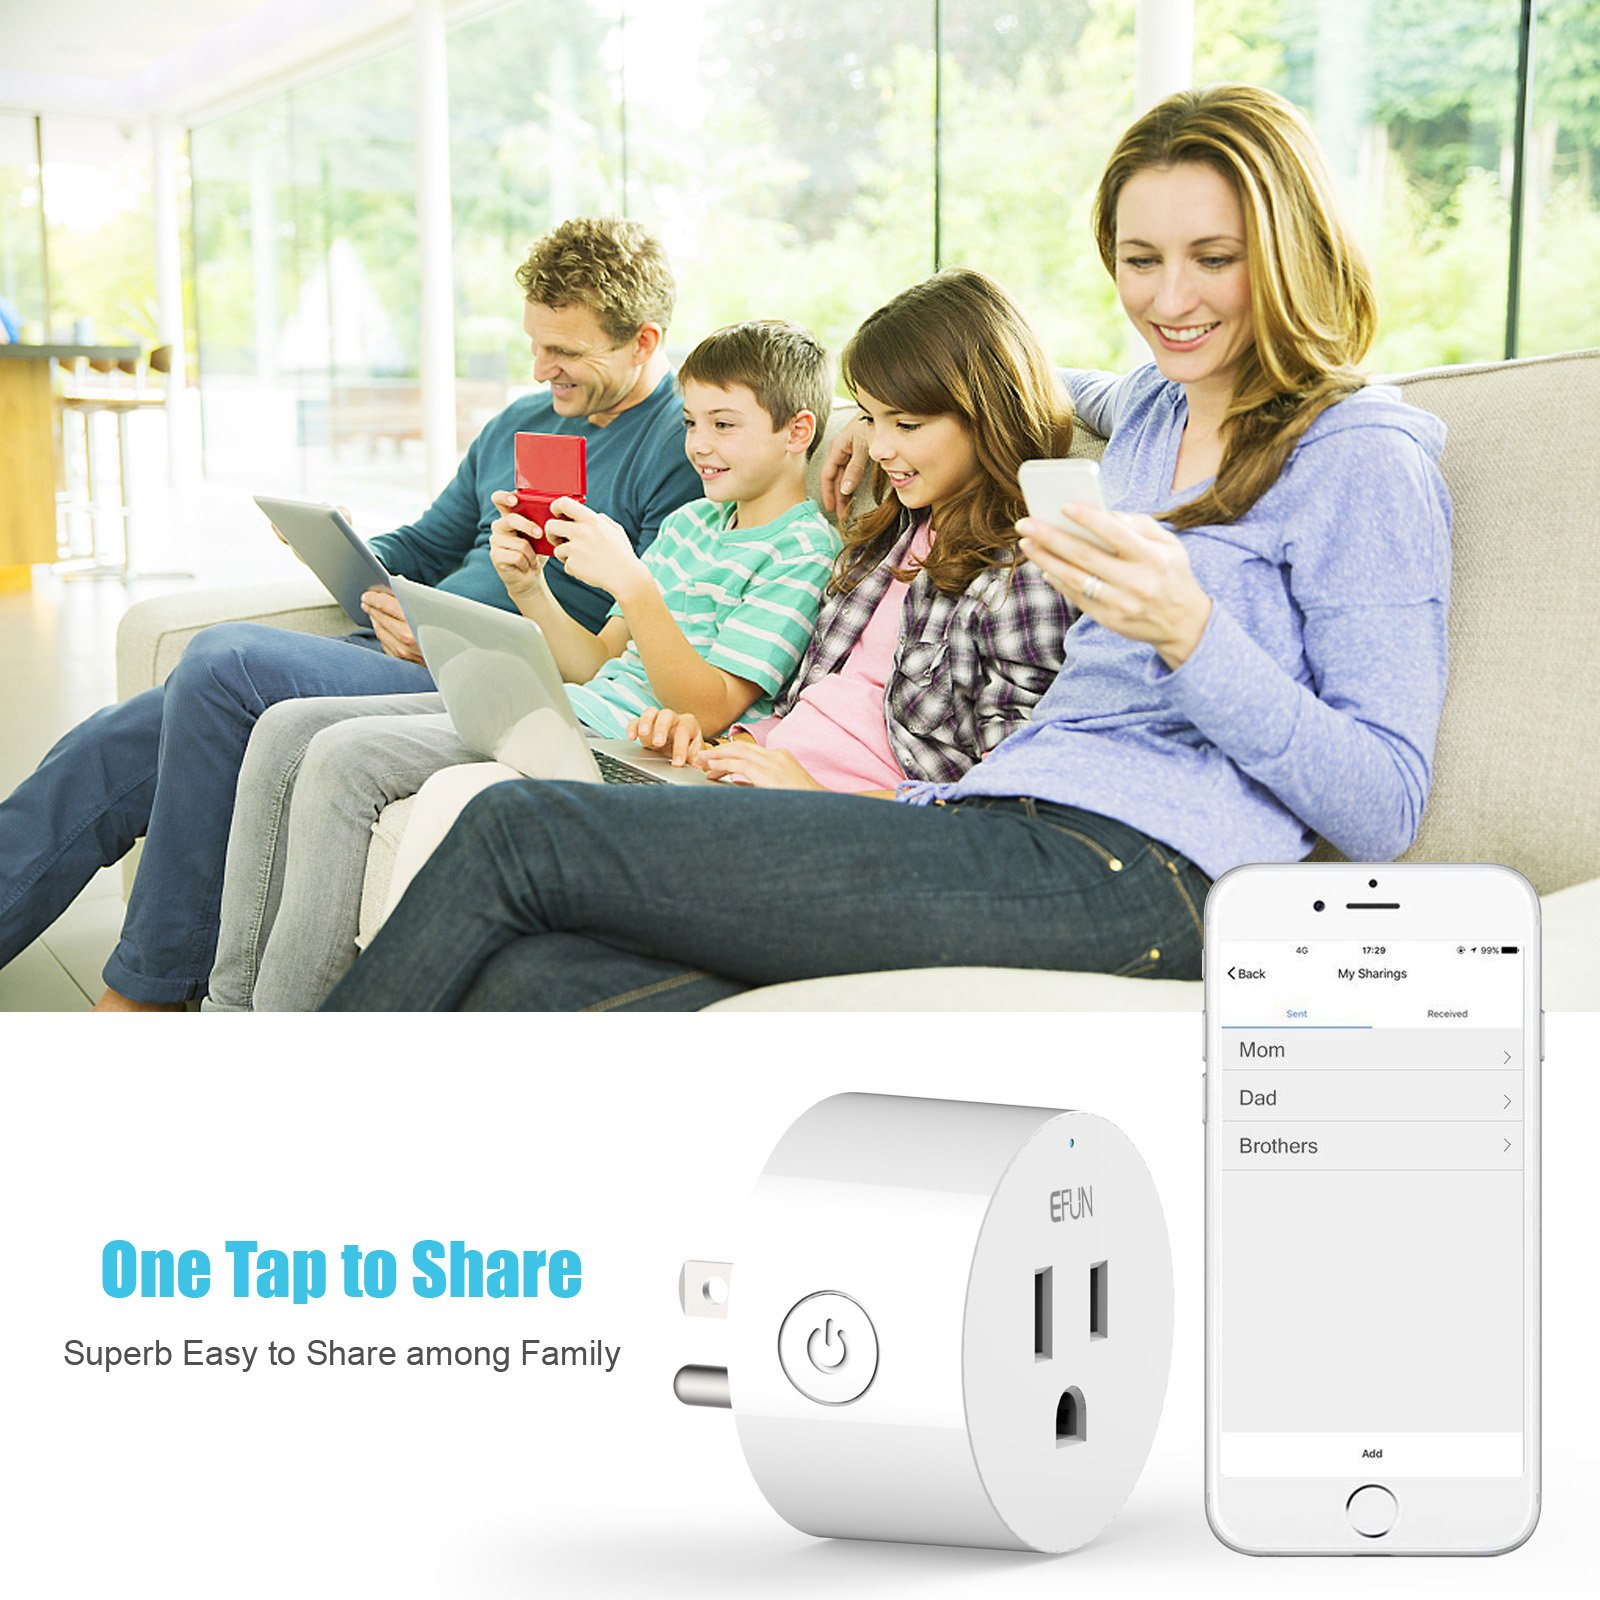 EFUN SH330W 2 PACK Wi-Fi Smart Plug Outlet,No Hub Required,Overload Protection,Fire Retardant Material,Space Saving,Works with Alexa and Google Assistant by EFUN (Image #7)